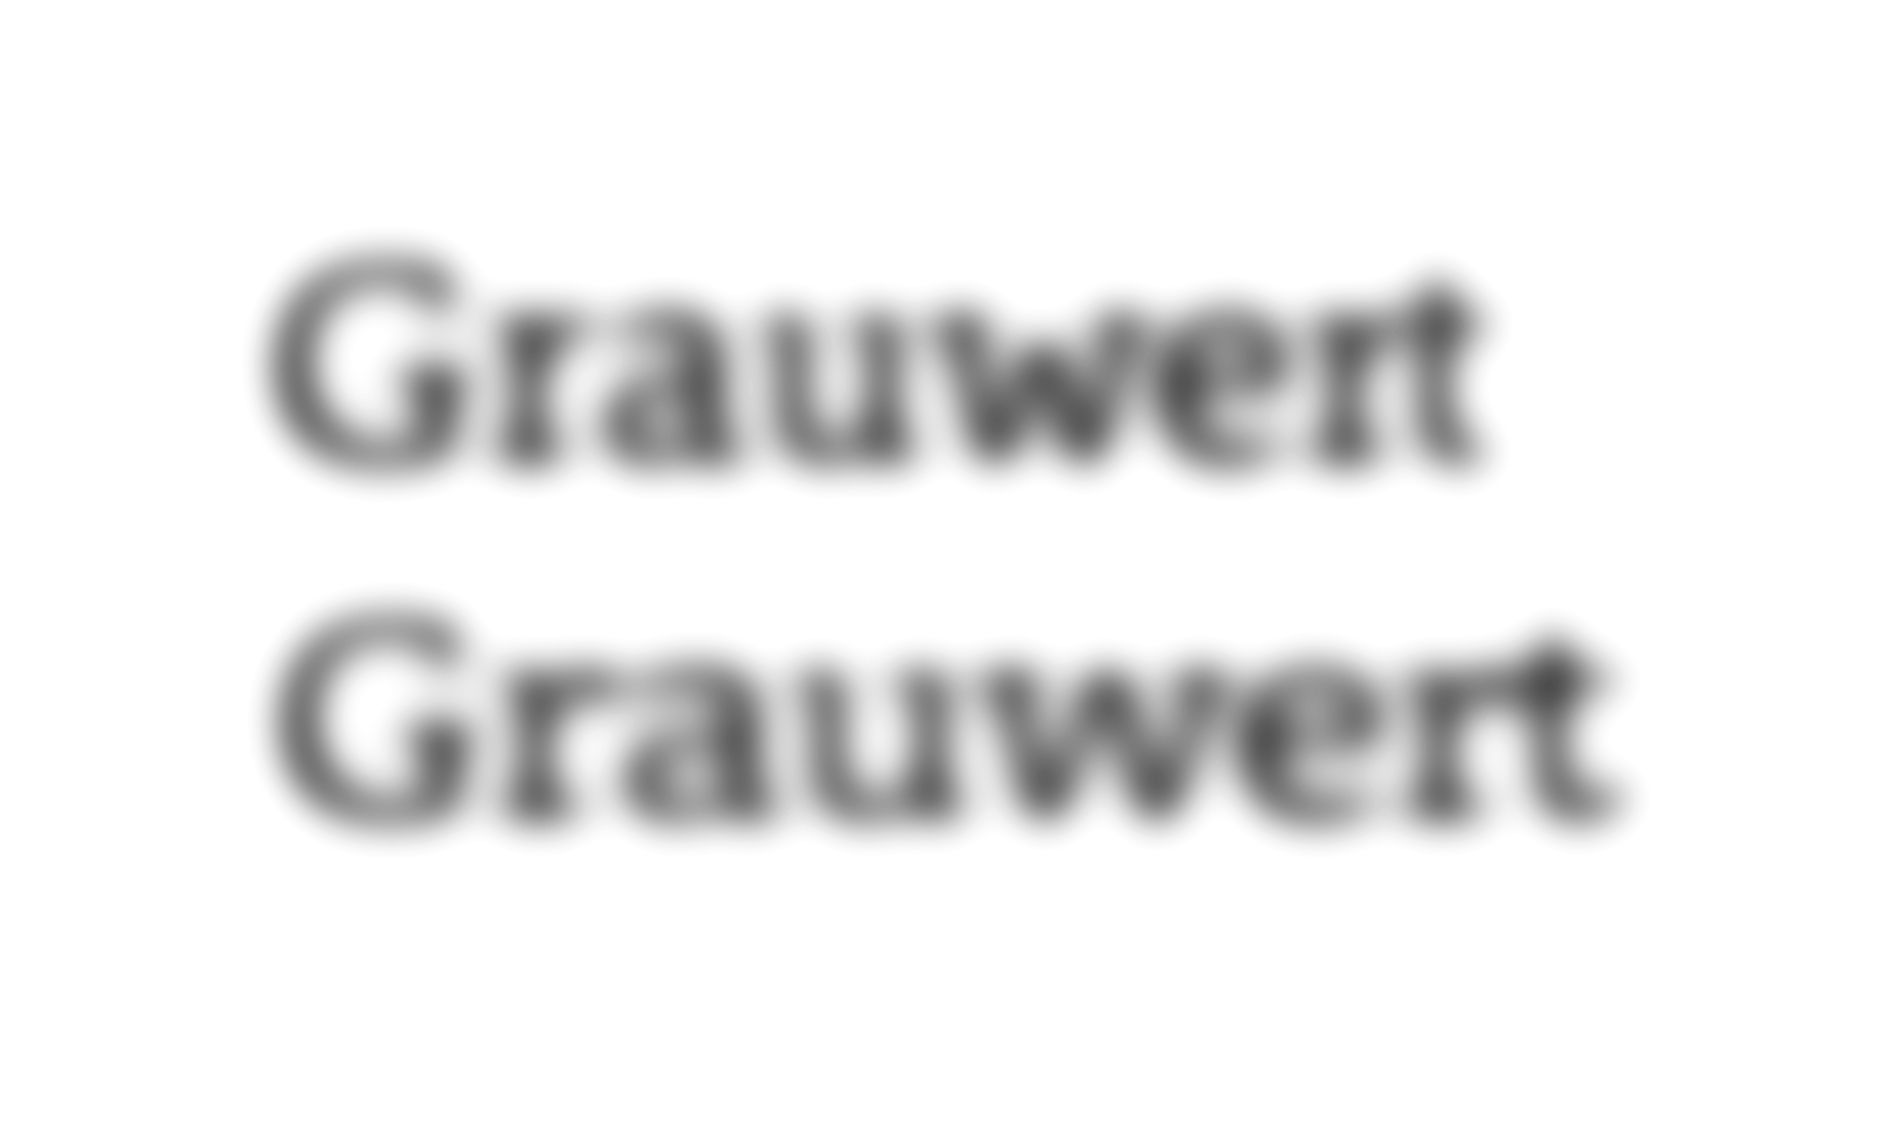 Blurred representation of the German Word